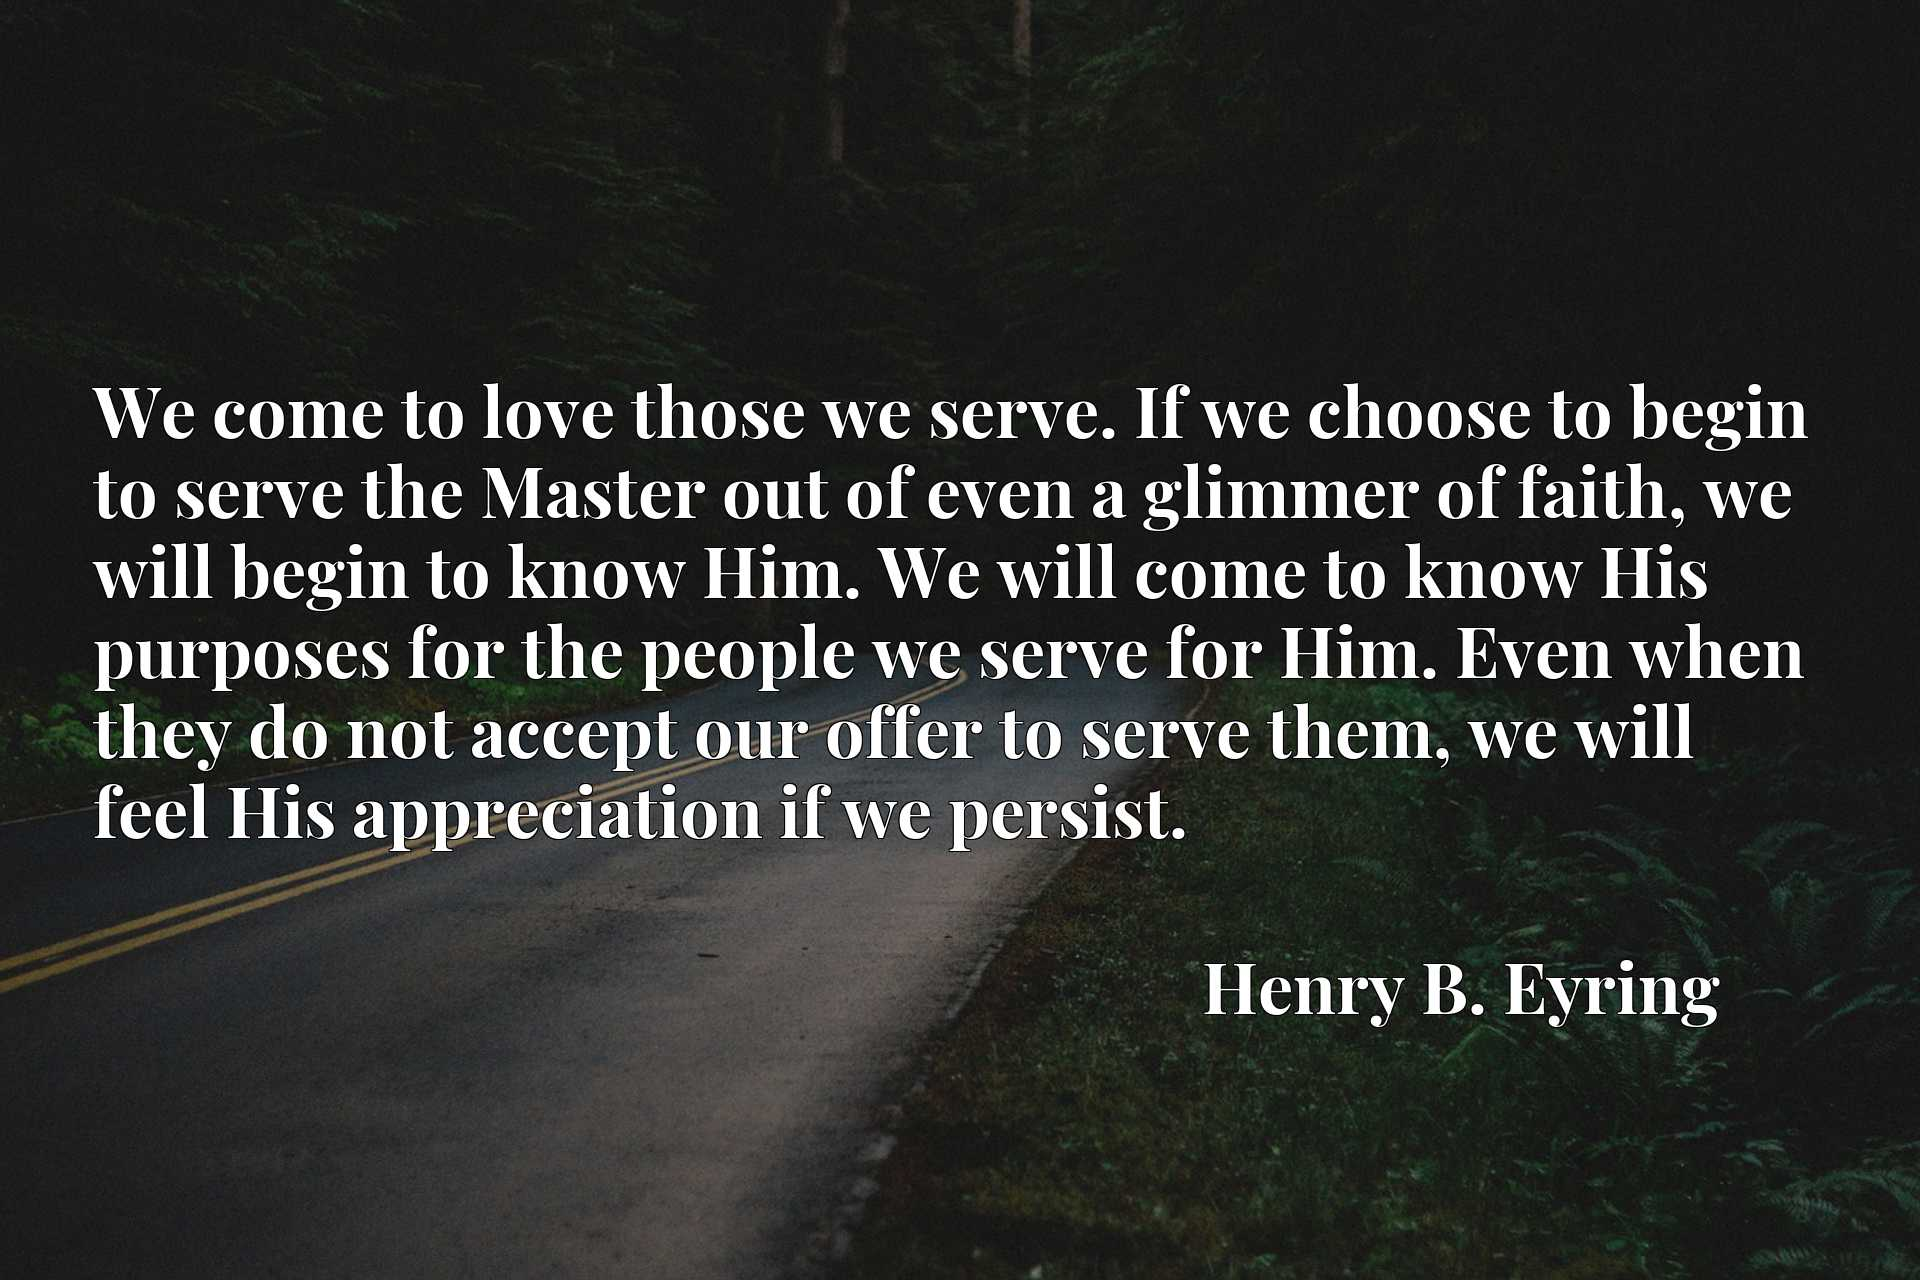 We come to love those we serve. If we choose to begin to serve the Master out of even a glimmer of faith, we will begin to know Him. We will come to know His purposes for the people we serve for Him. Even when they do not accept our offer to serve them, we will feel His appreciation if we persist.